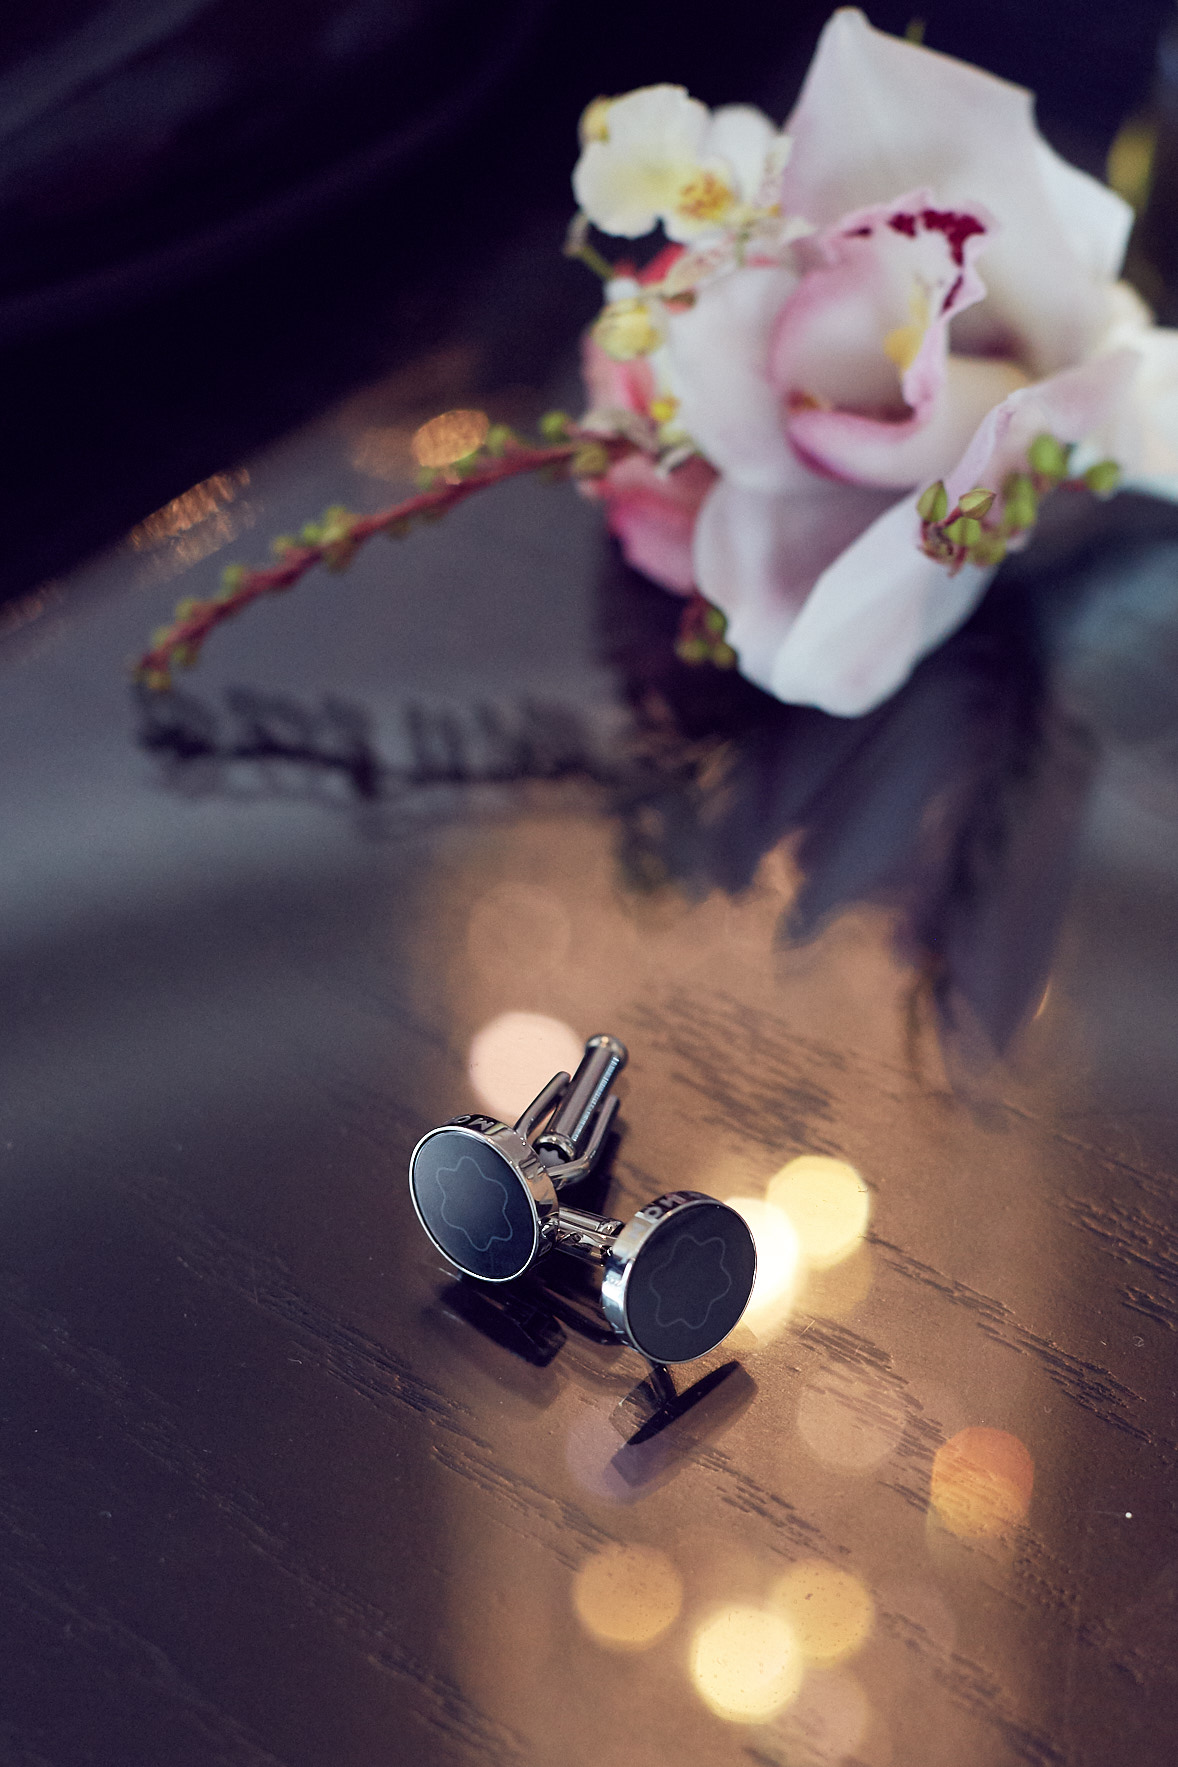 Montblanc cufflinks & orchard boutonniere by Boutierre Girls